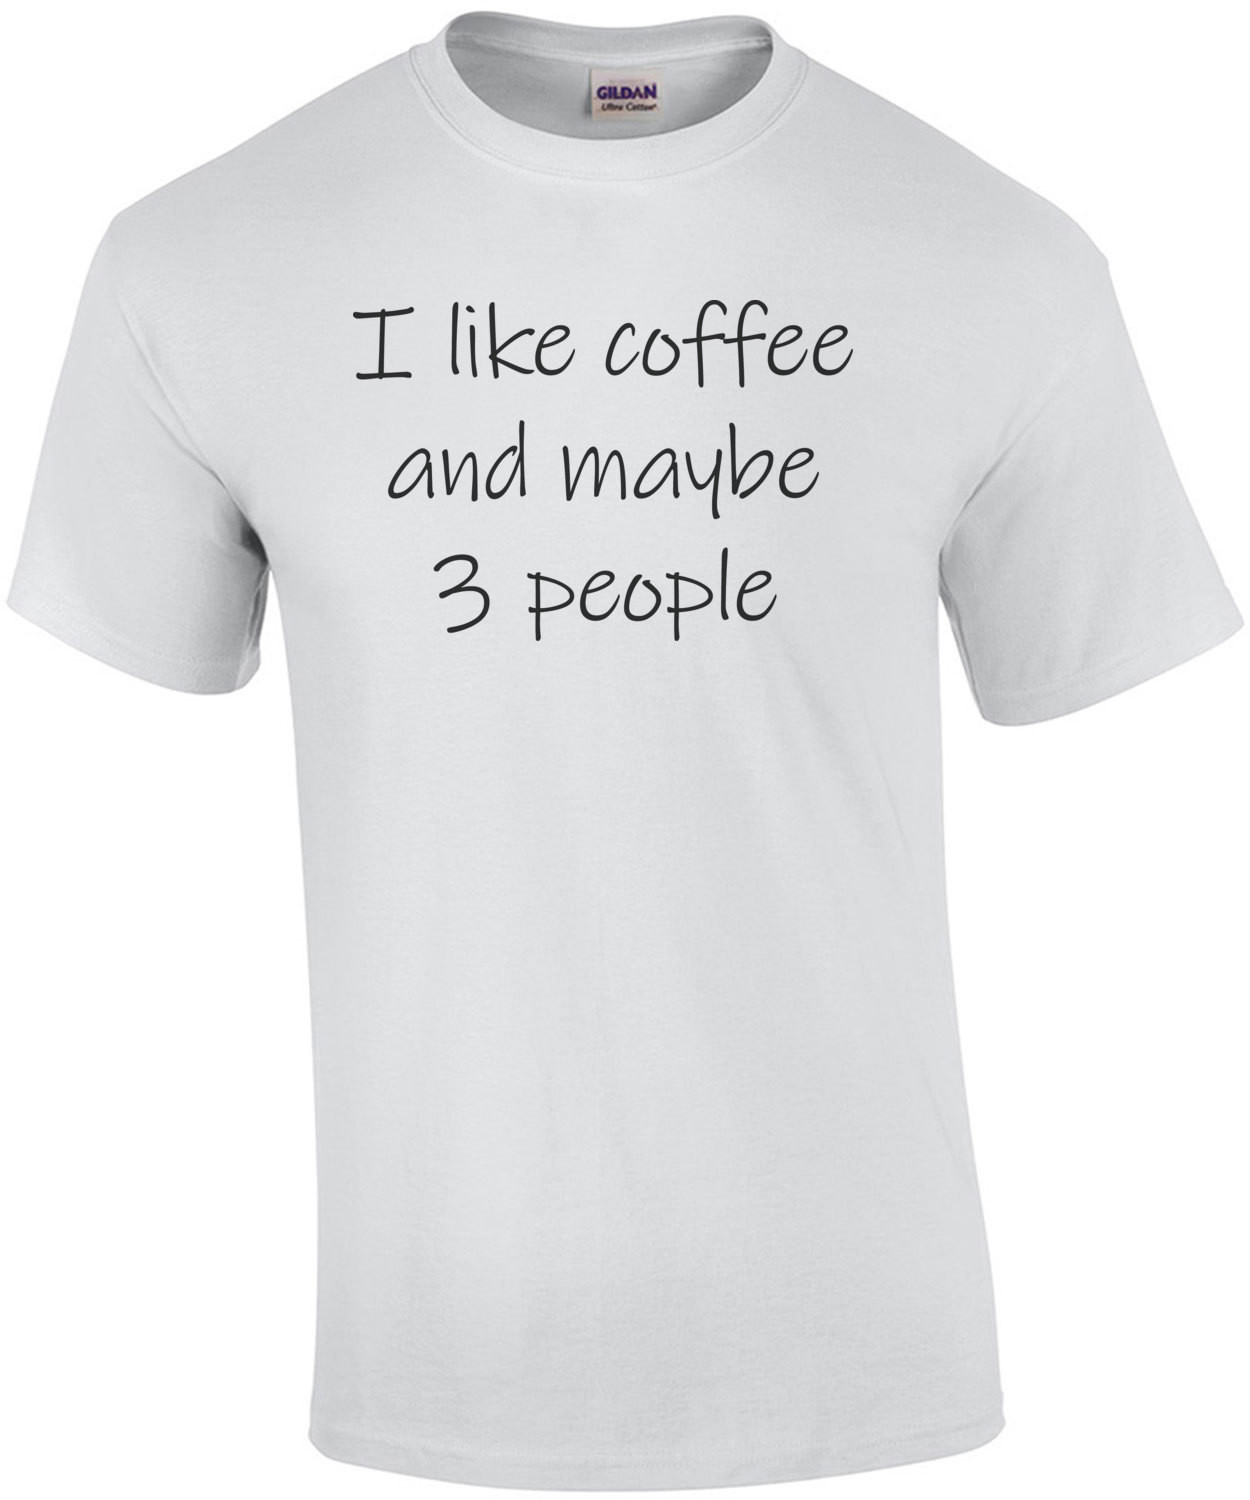 I like coffee and maybe 3 people - funny coffee t-shirt